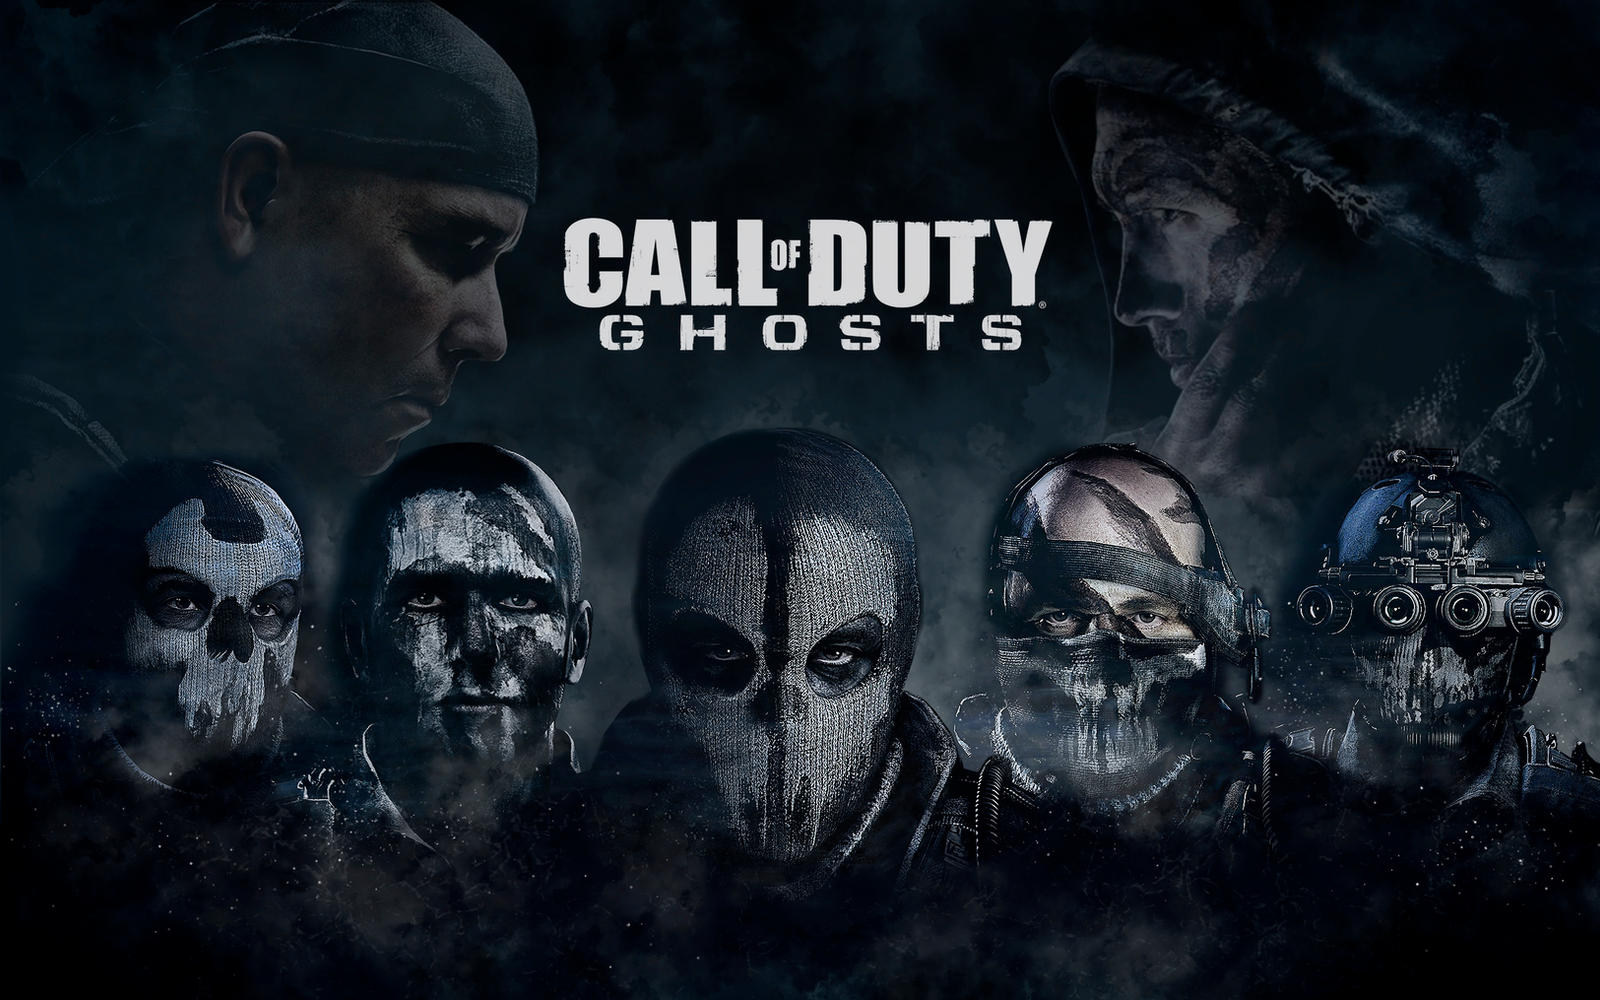 Call Of Duty Ghosts Fan Wallpaper By Devilkazz On Deviantart